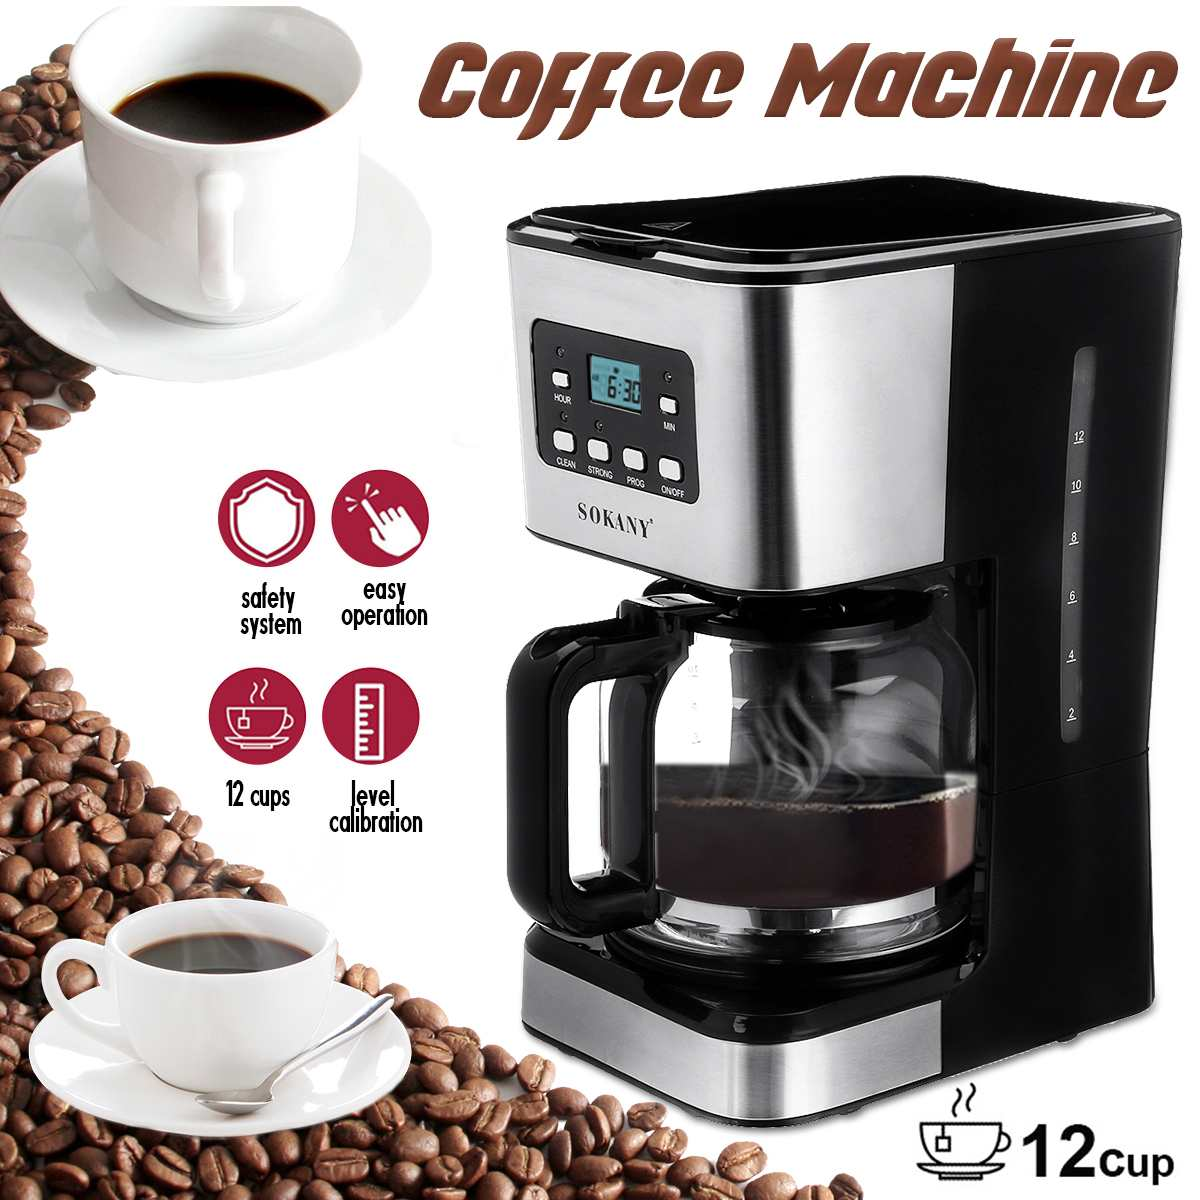 Coffee Machine 12 Cups Semi-Automatic Steam Coffee Maker 220V Detachable Washable Coffeemaker For Espresso Cappuccino Latte